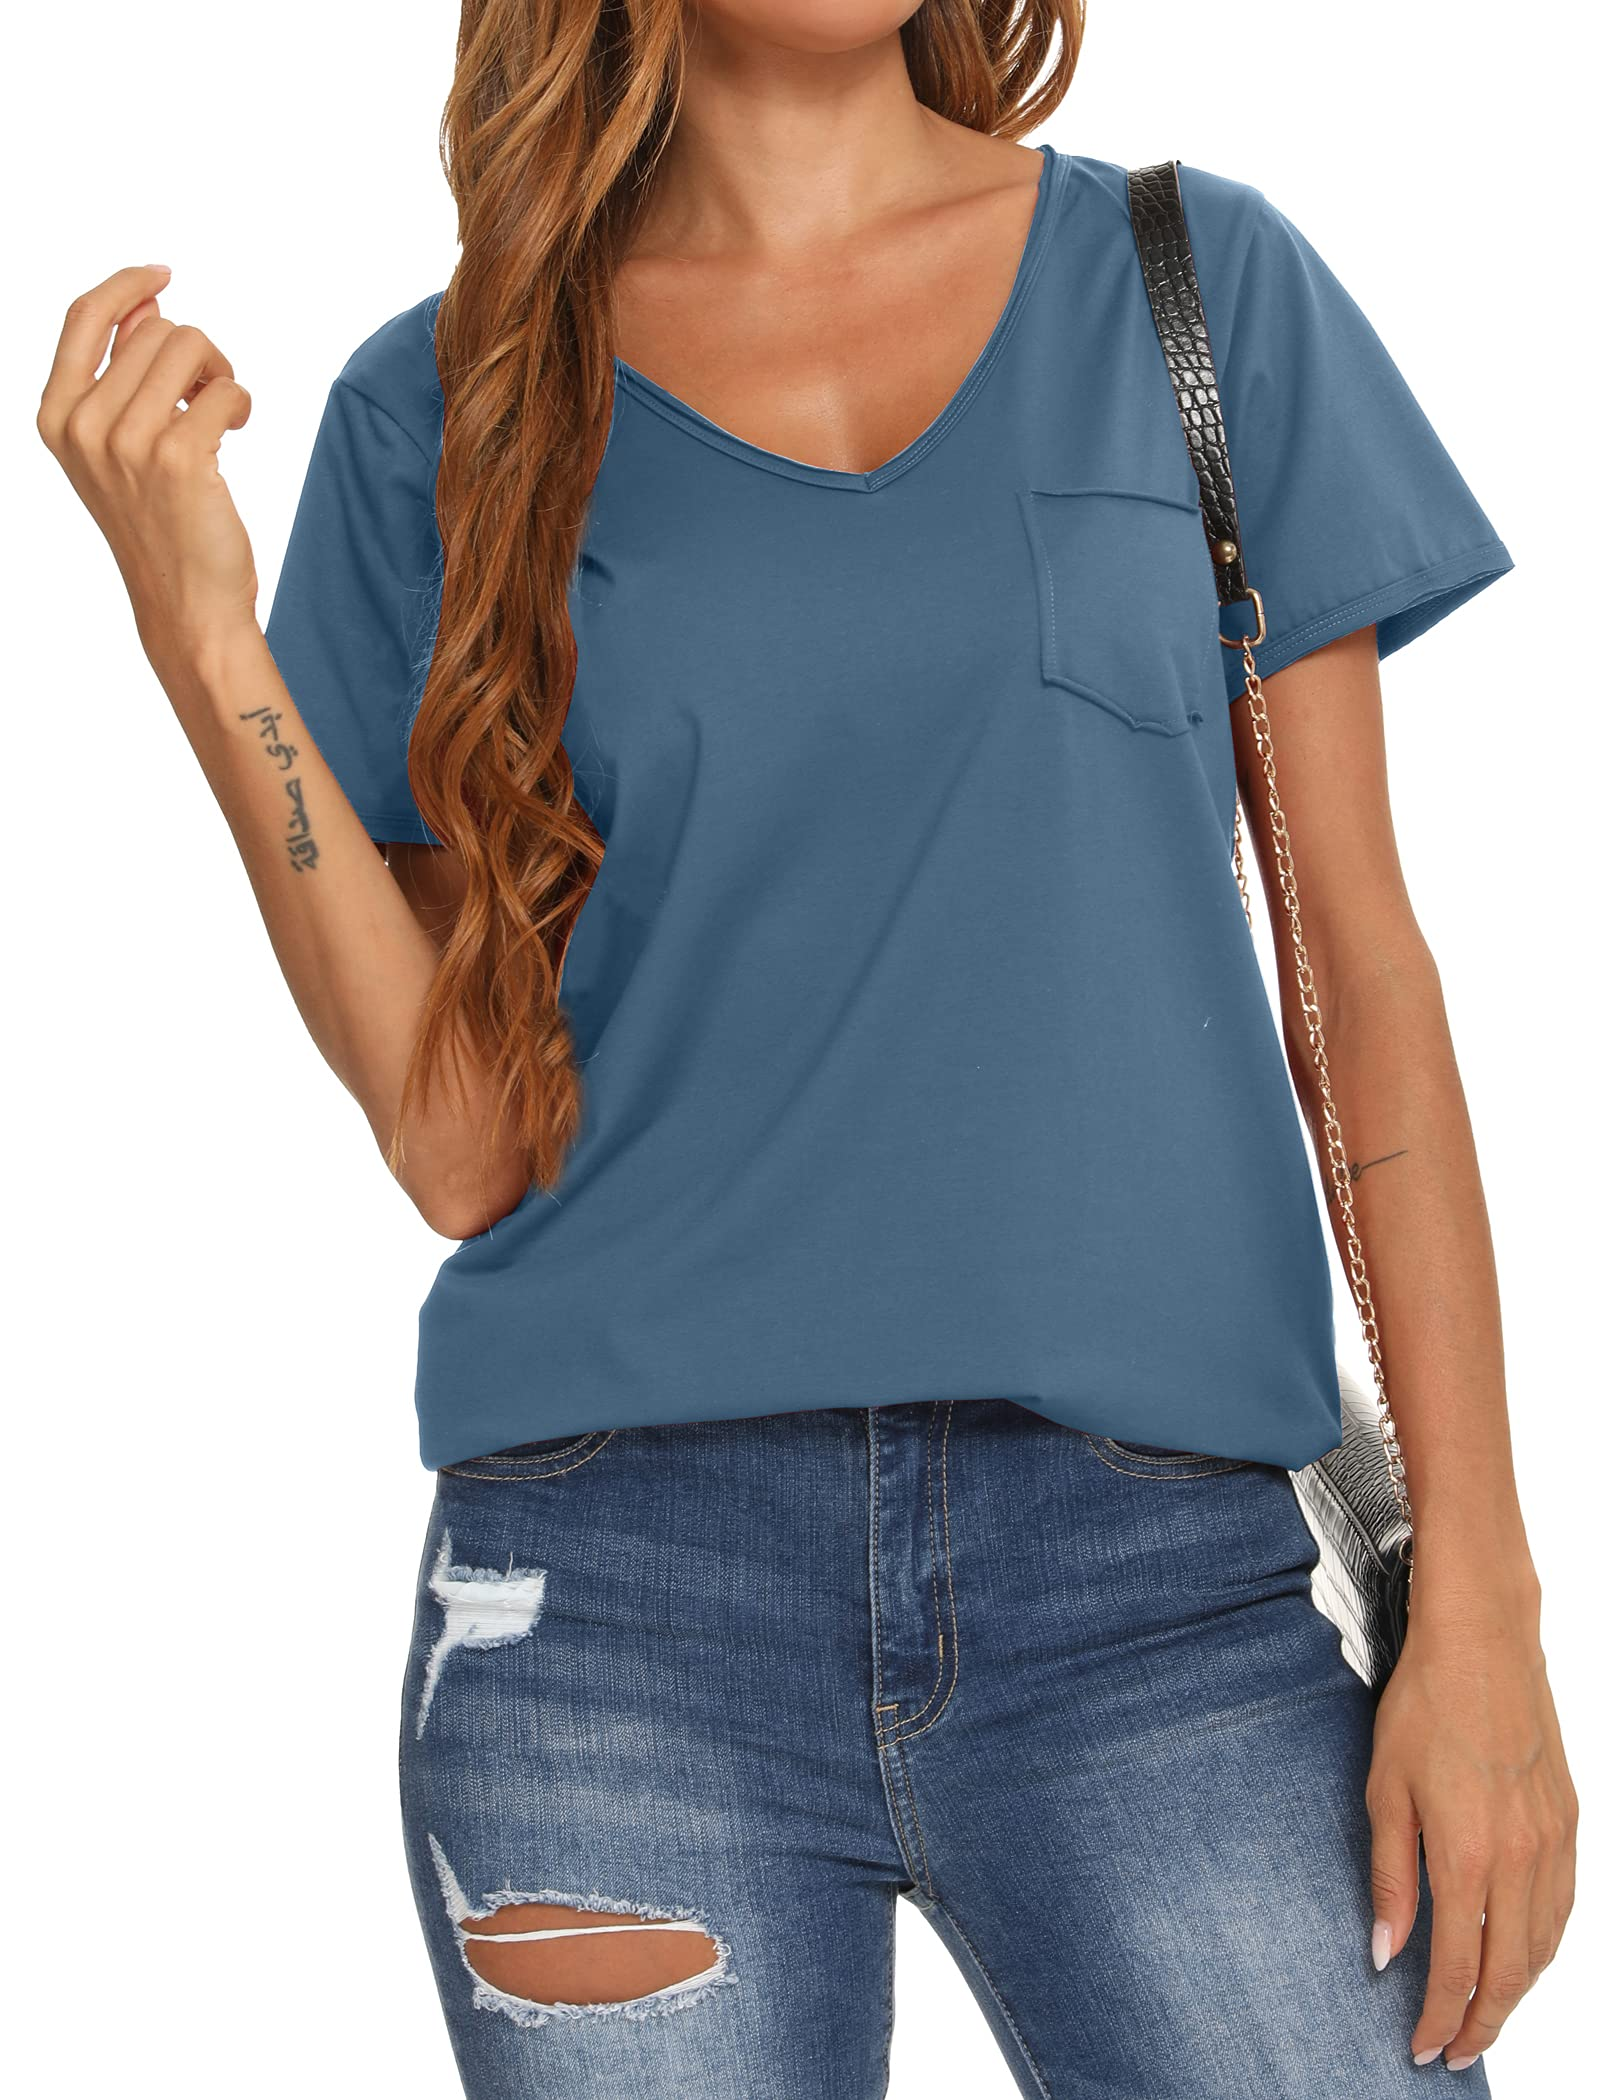 YYA V Neck T Shirts for Women Short Sleeve Shirts Fitted Cute